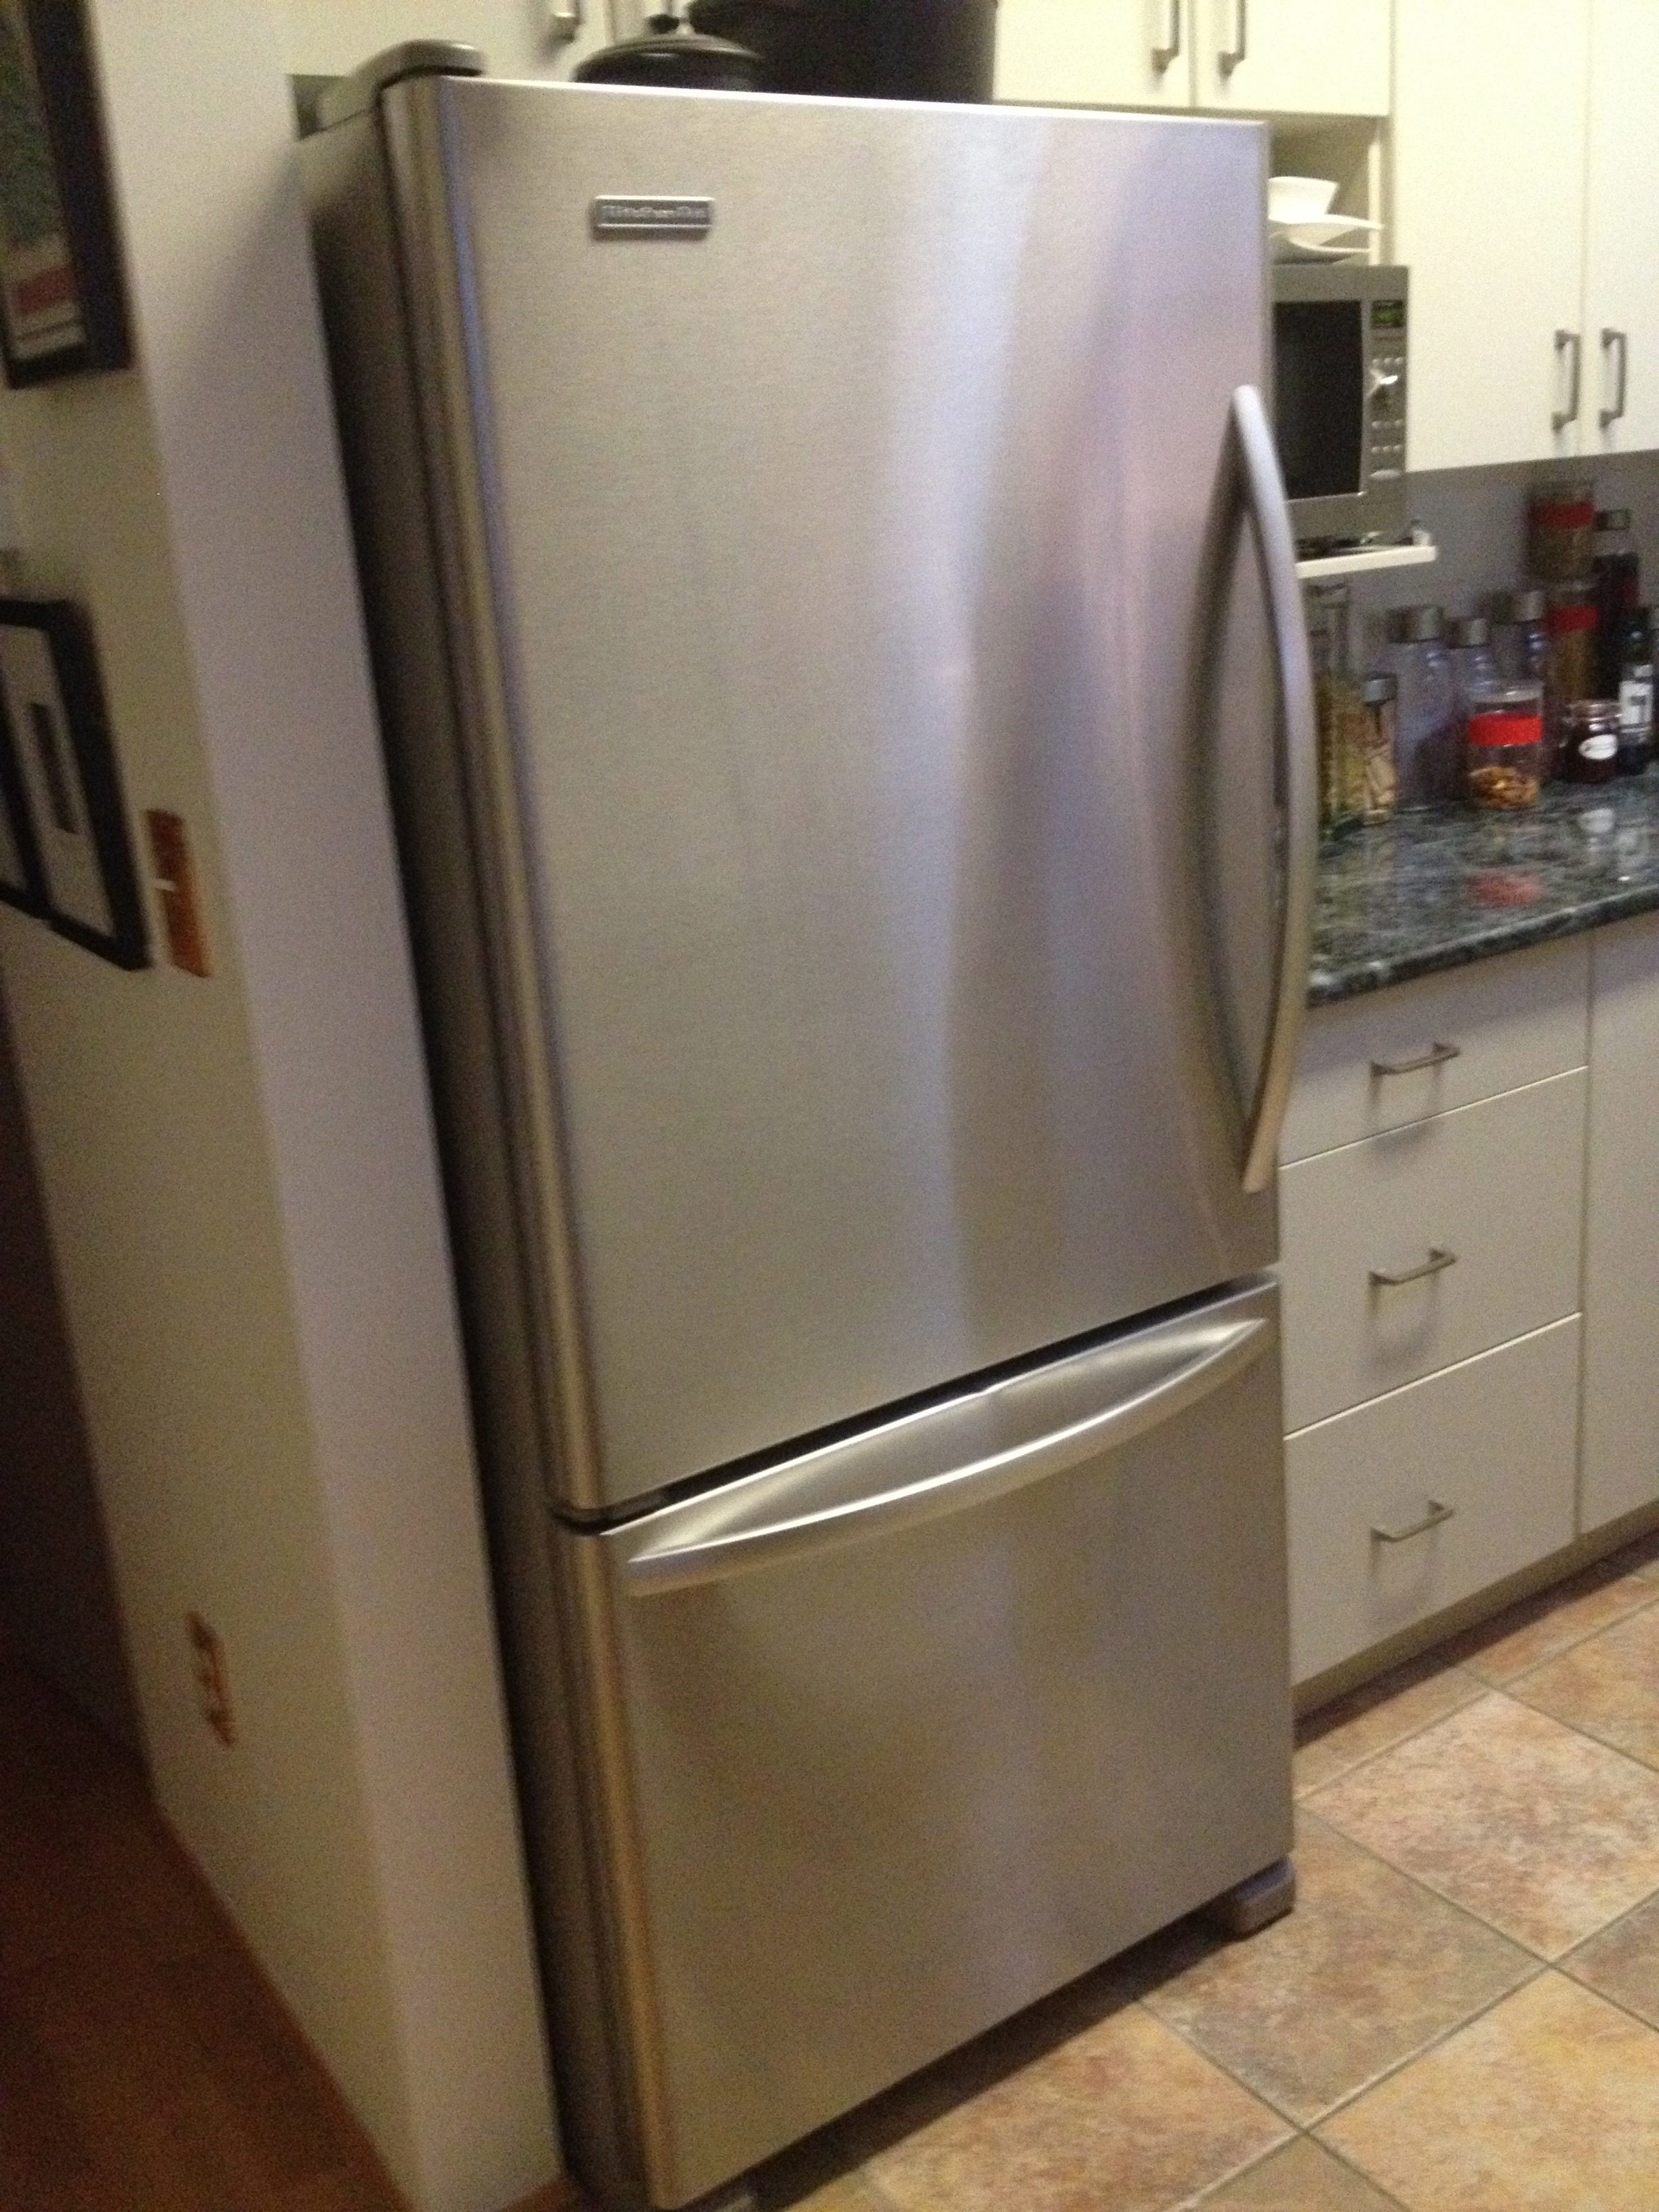 Top 714 Complaints And Reviews About KitchenAid Refrigerators Page 2